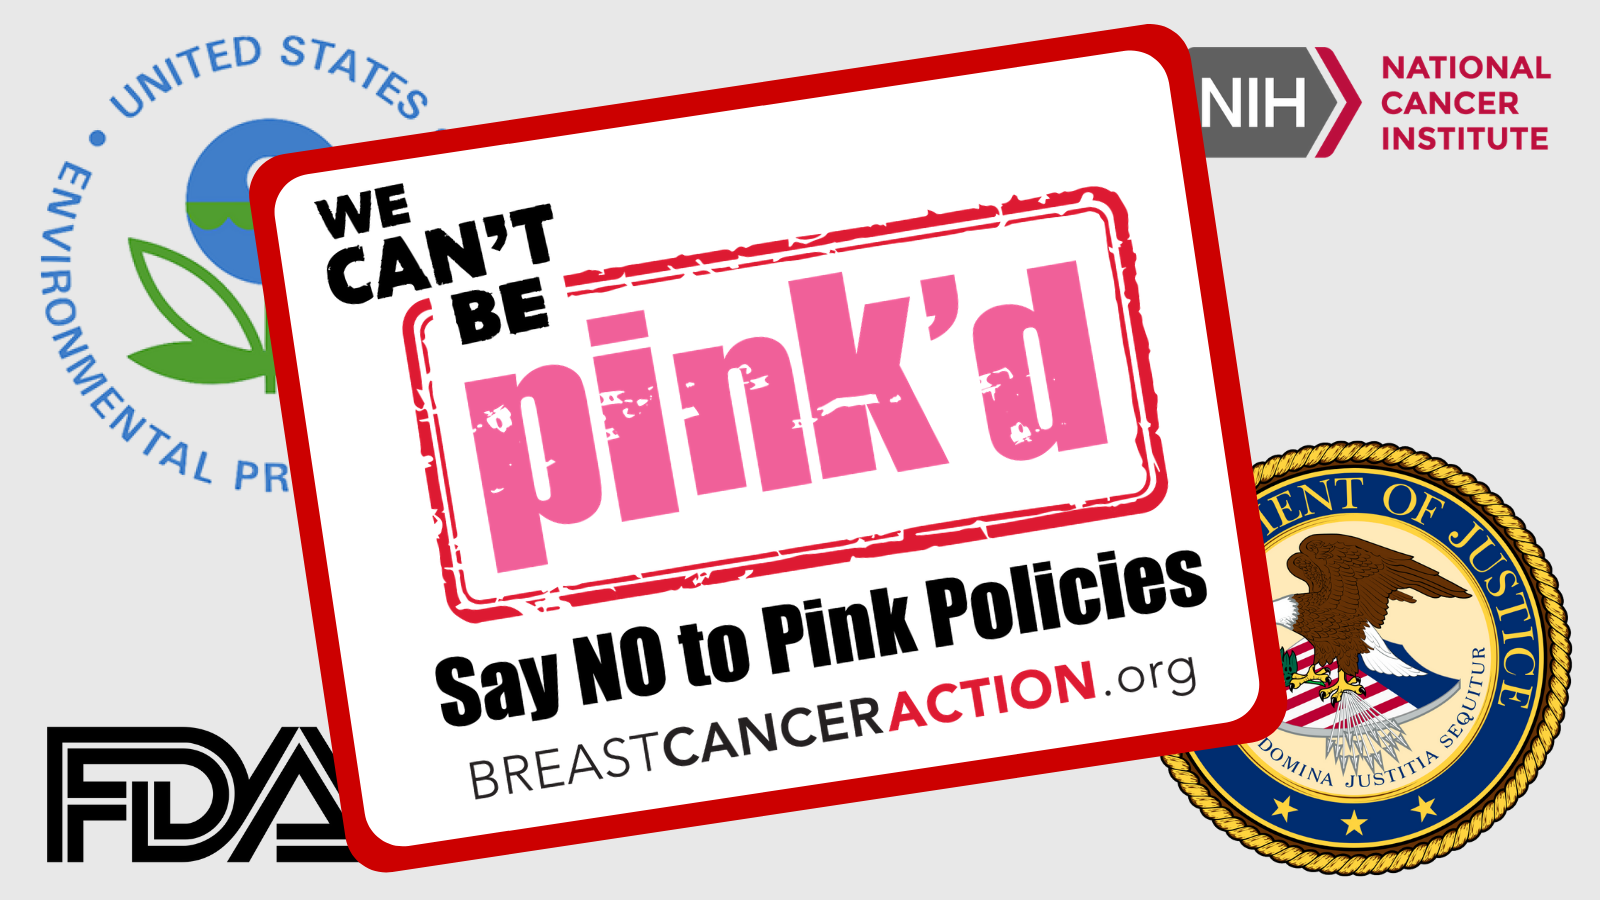 The Think Before You Pink campaign image with the logos of the EPA, FDA, NCI, and DOJ